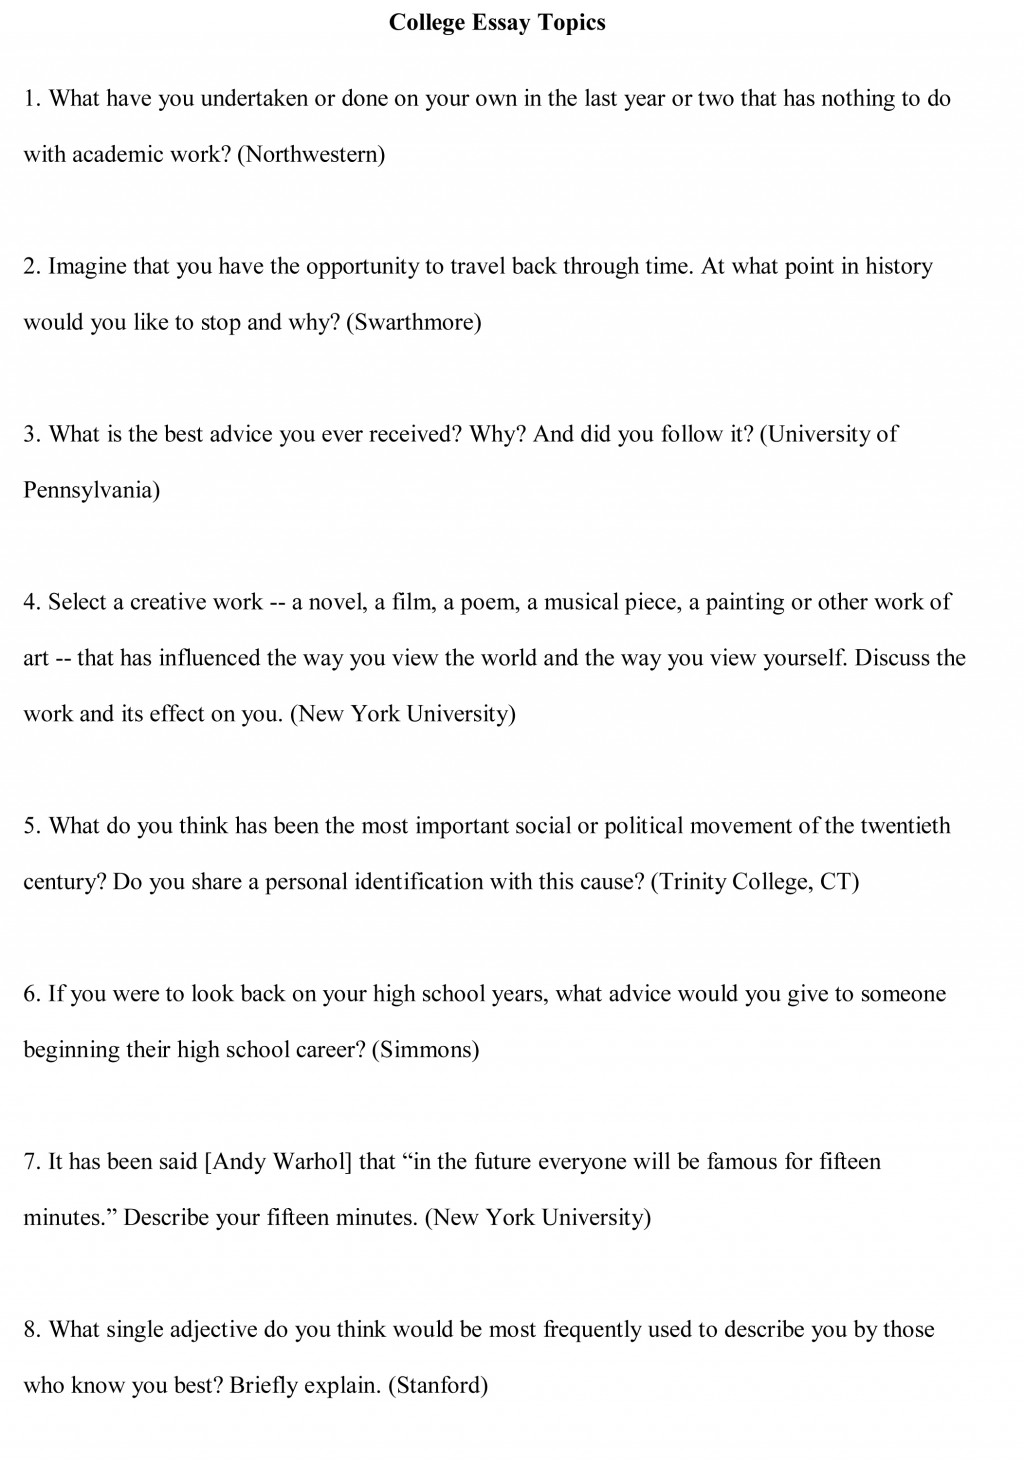 014 Essay Topics College Free Sample1 Archaicawful For High School Students In India The Crucible Large